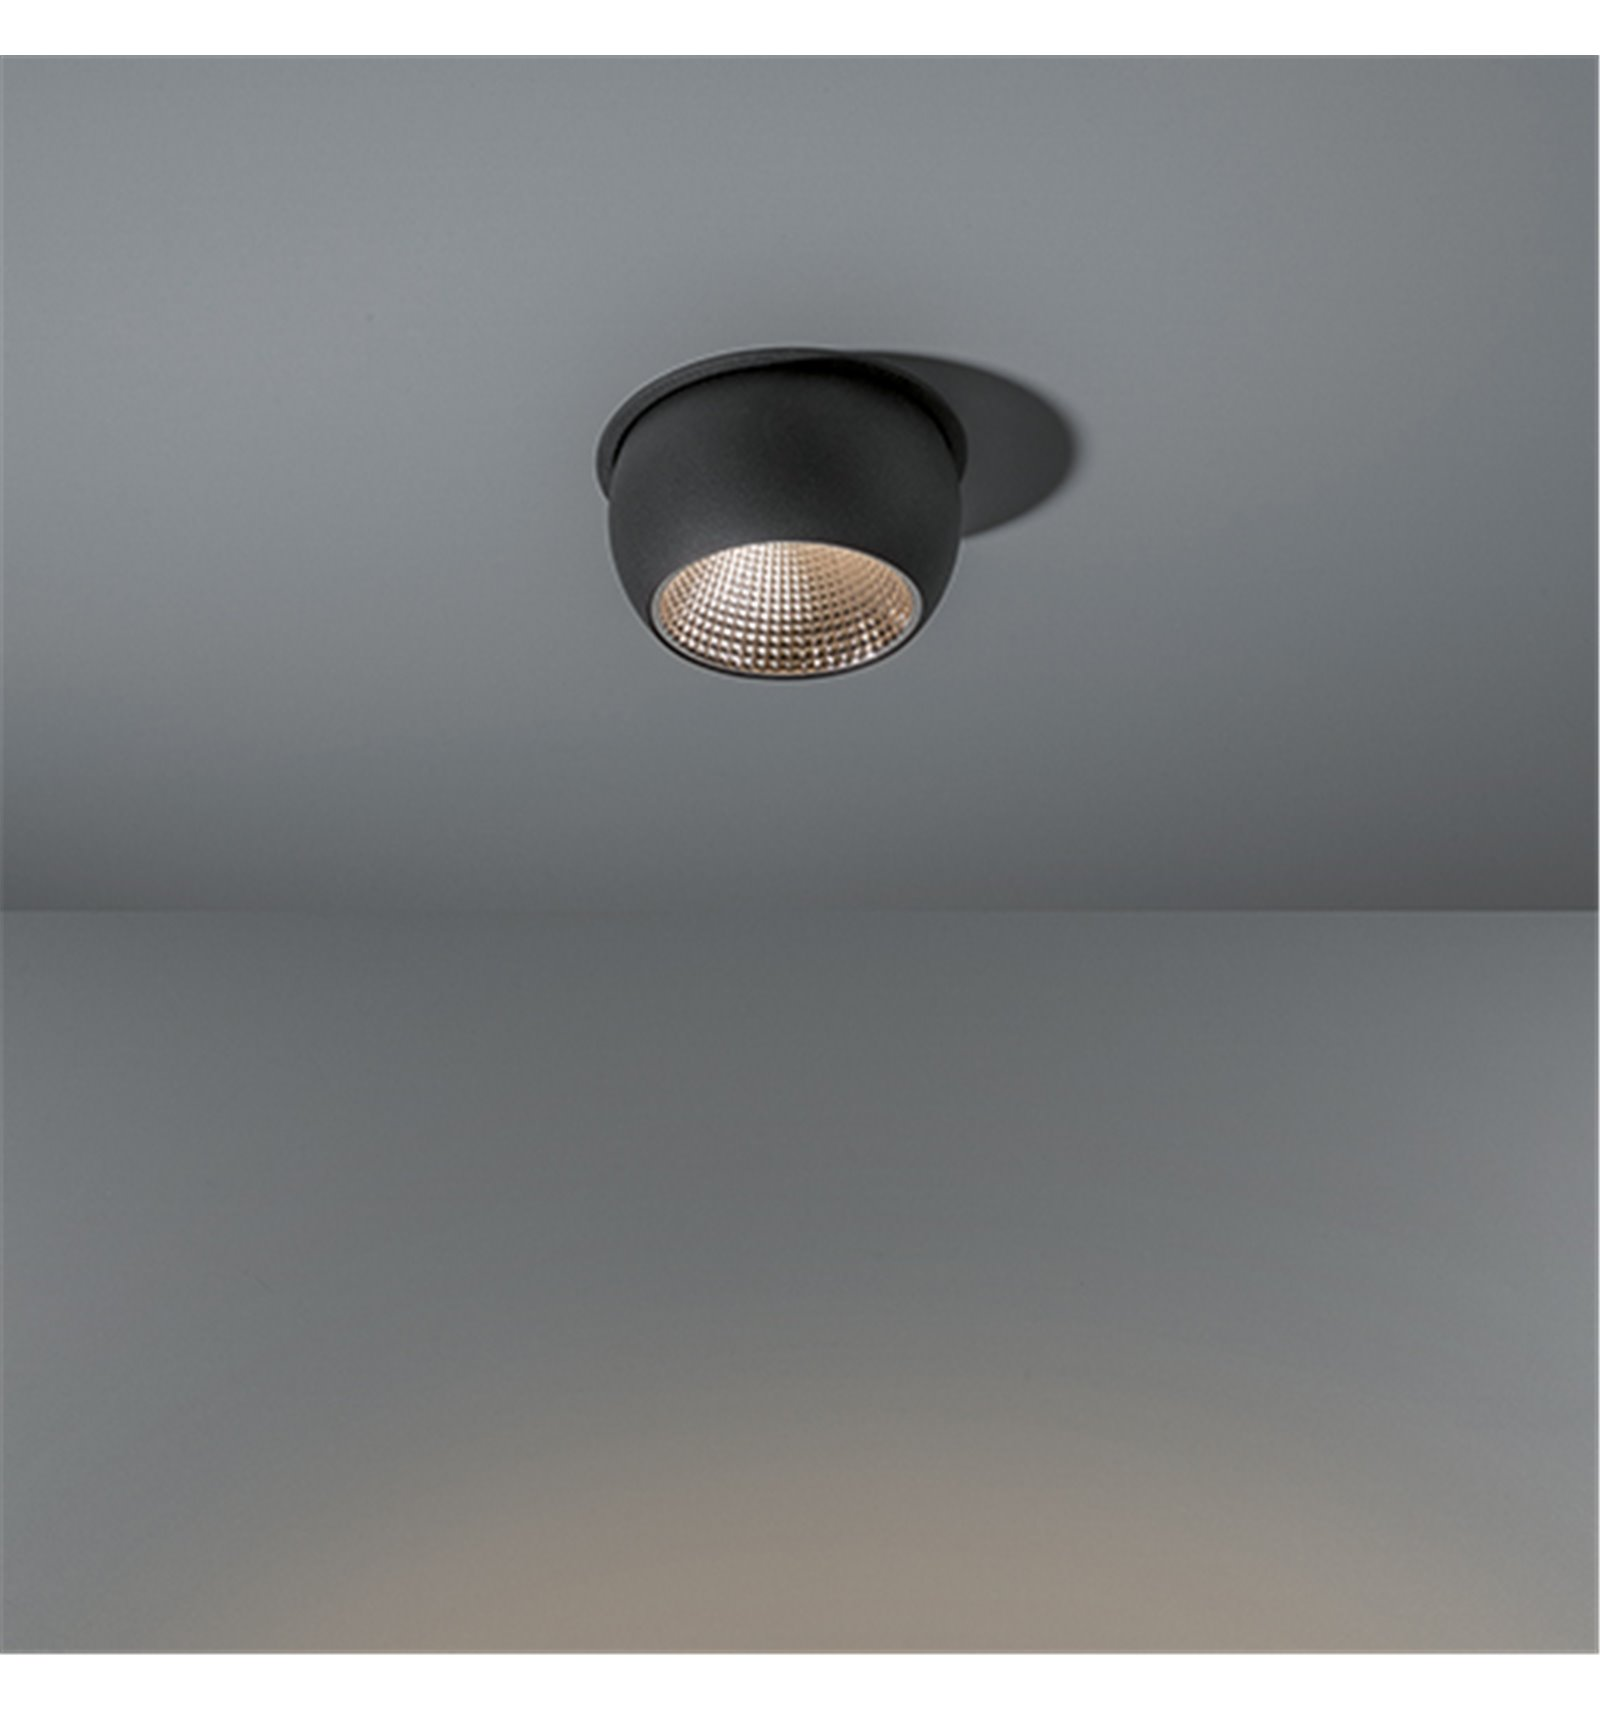 Marbul recessed 1x by Modular Lighting 18469